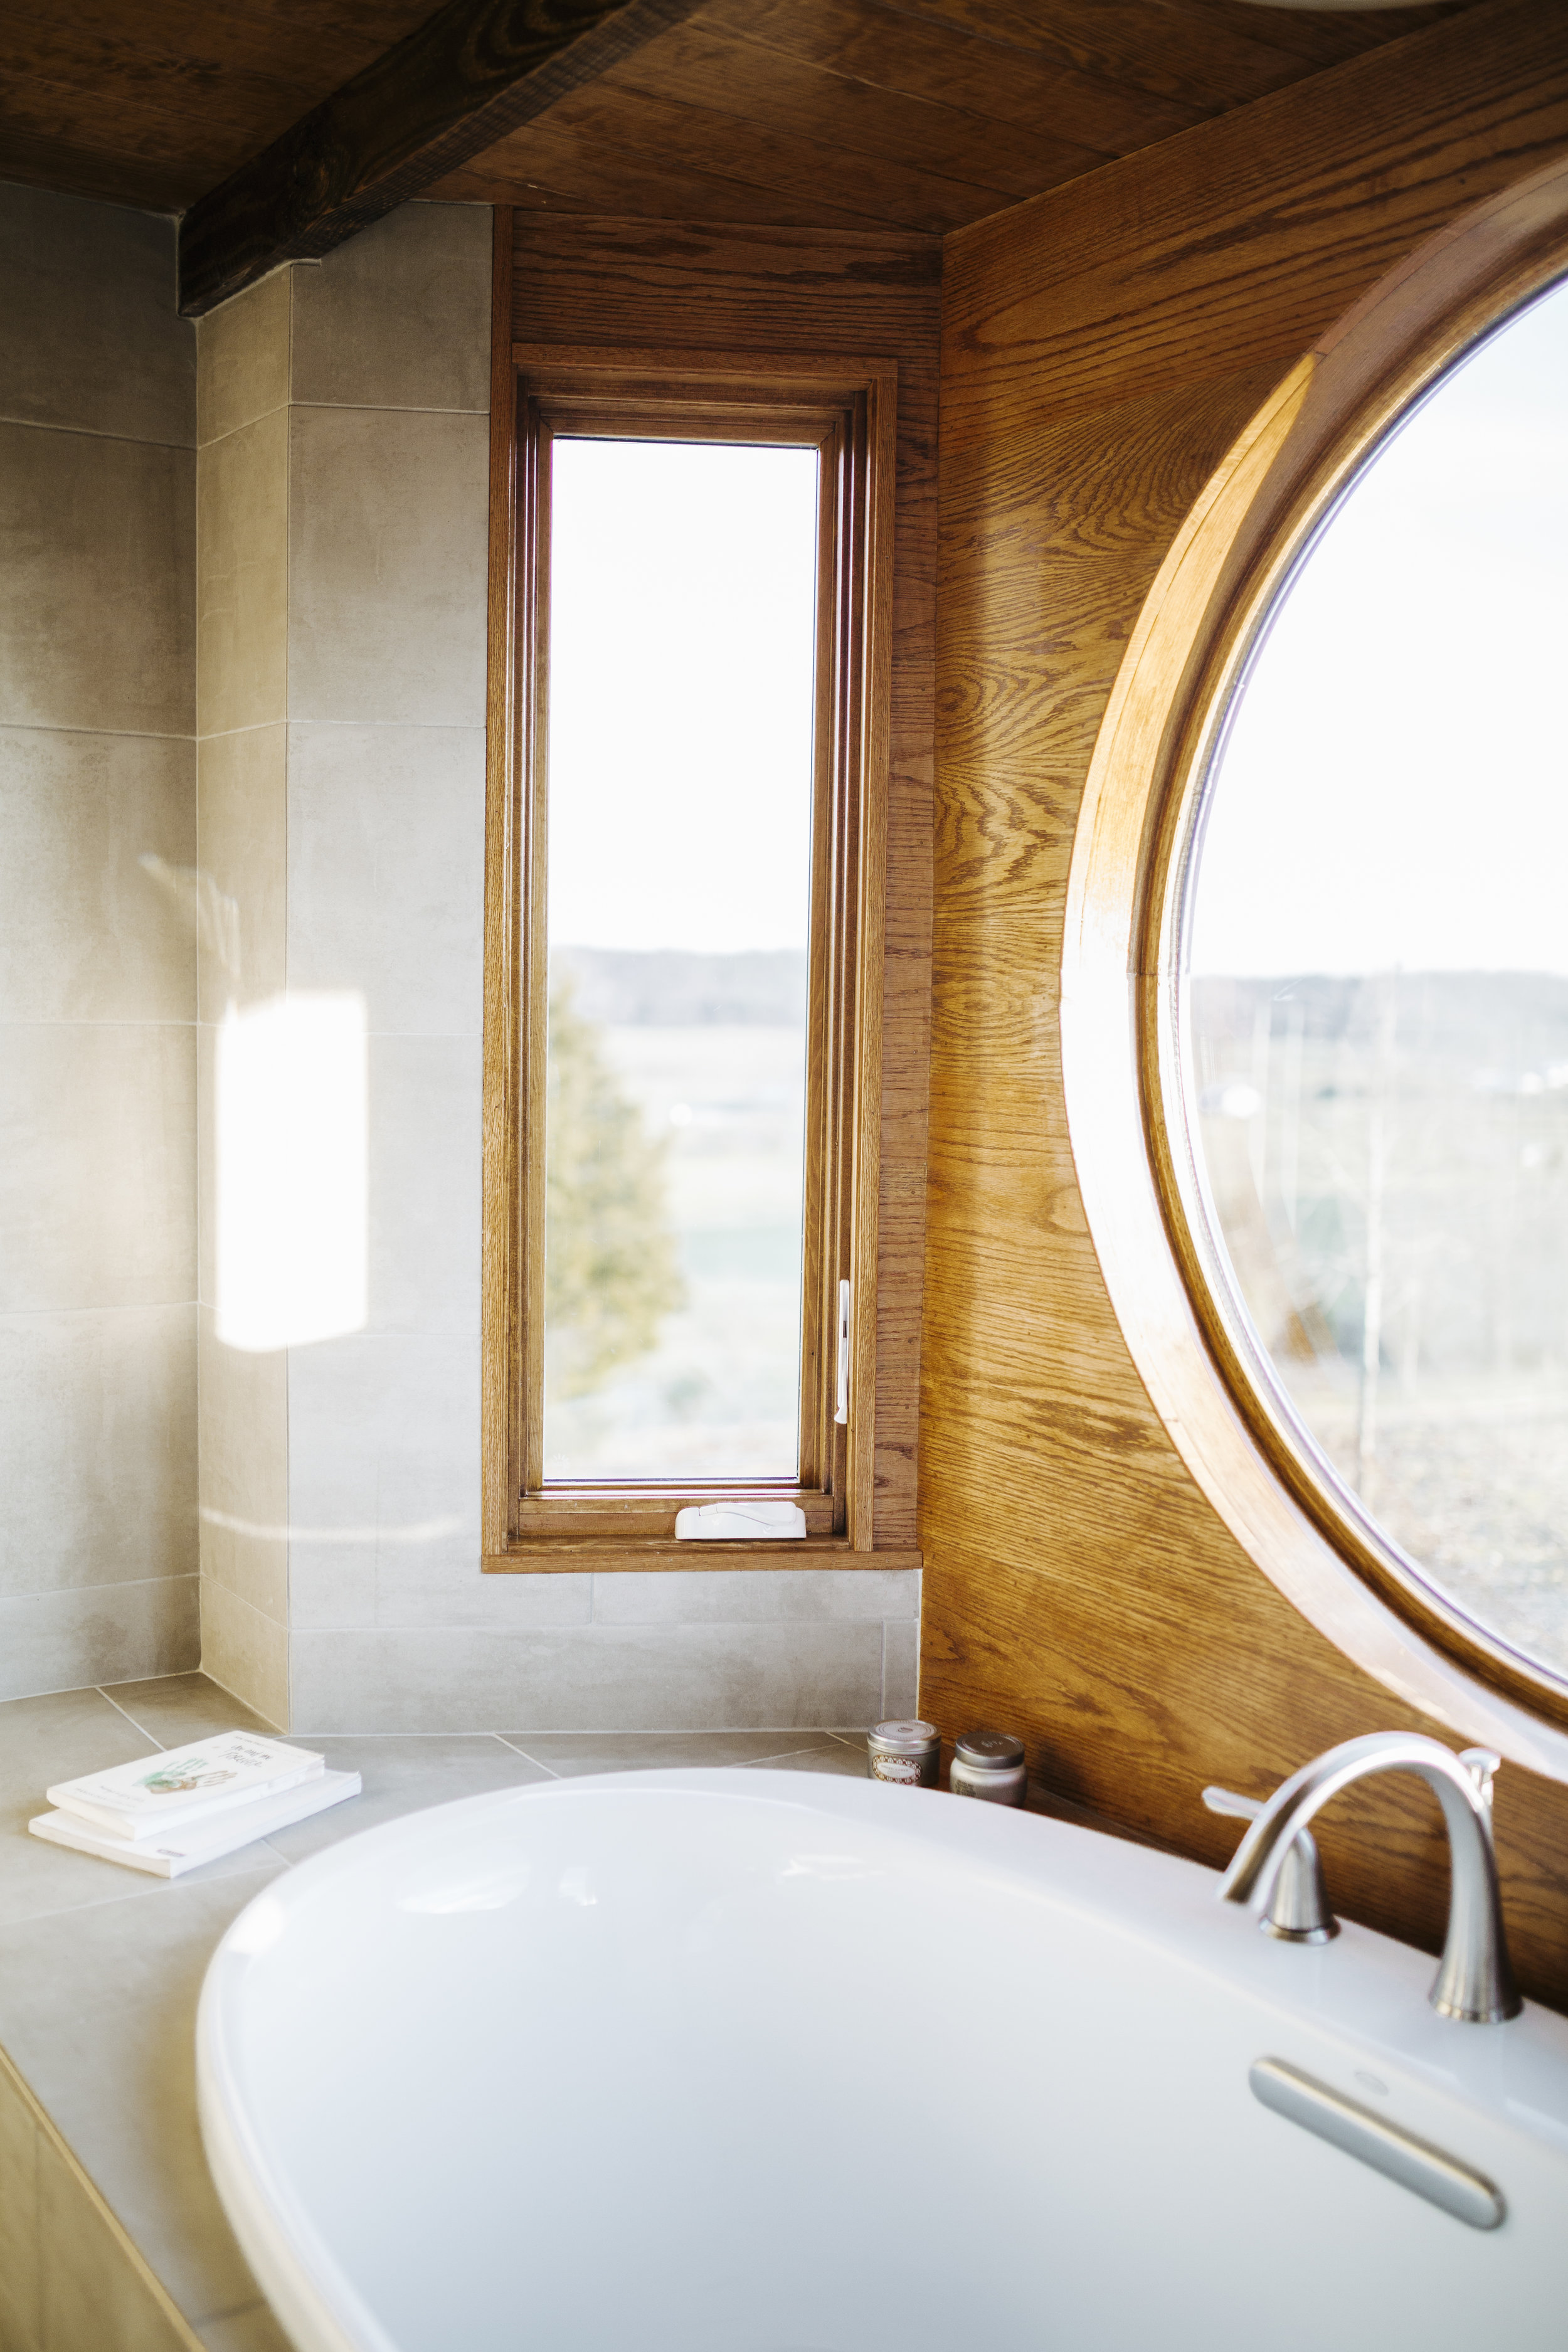 The Monocle by Wind River Tiny Homes - bath tub, mixed tile and oak, wet bath